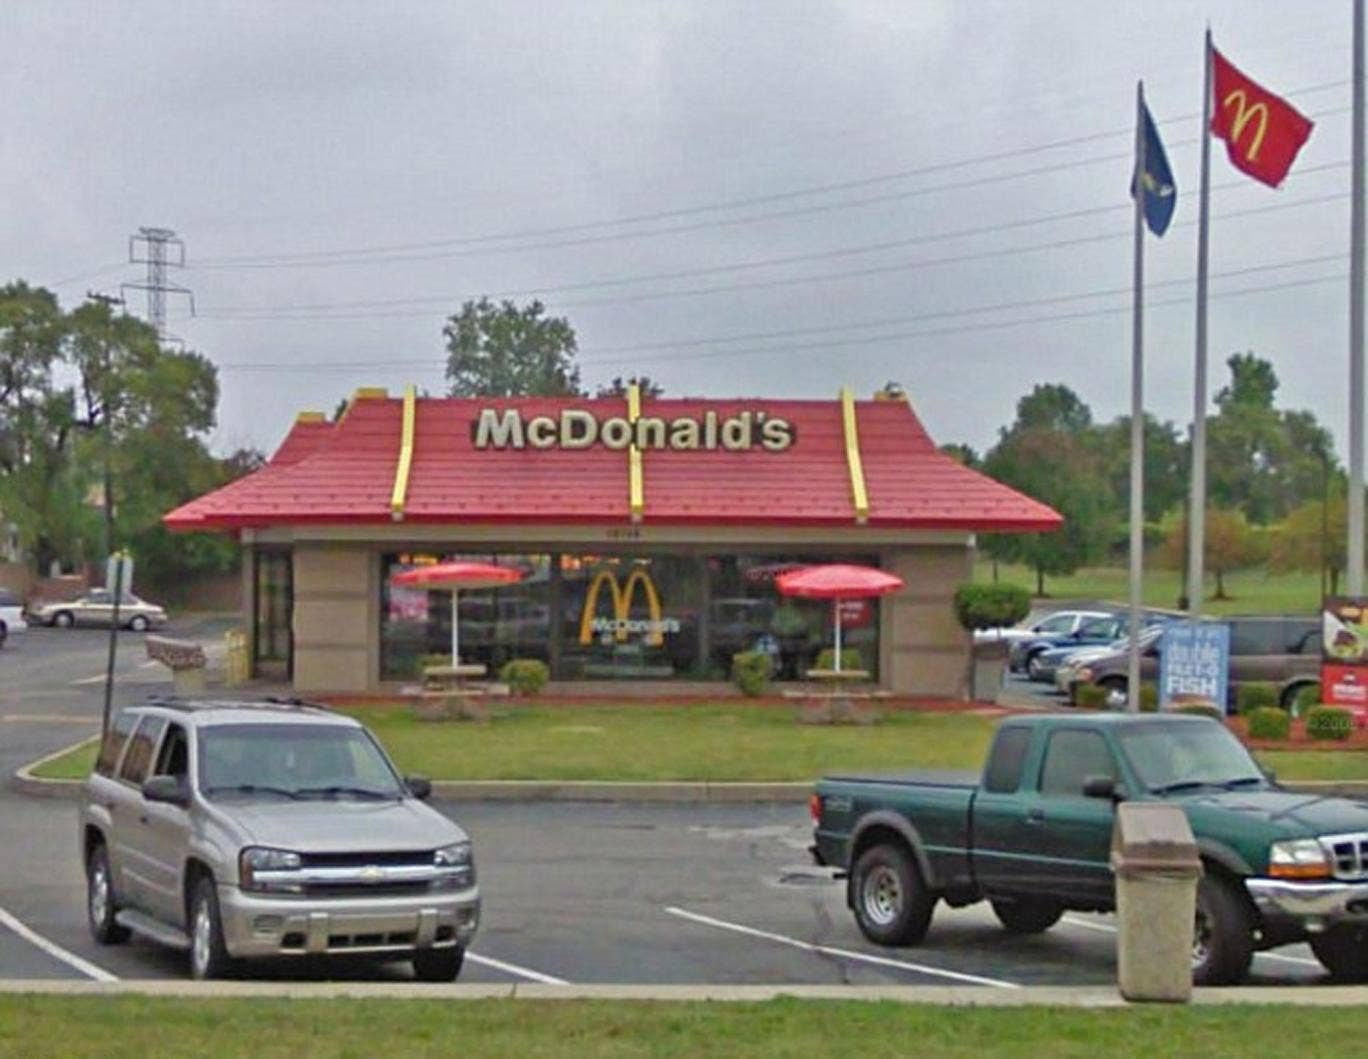 The McDonald's branch on Ford Road, Dearborn in Detroit, Michigan.